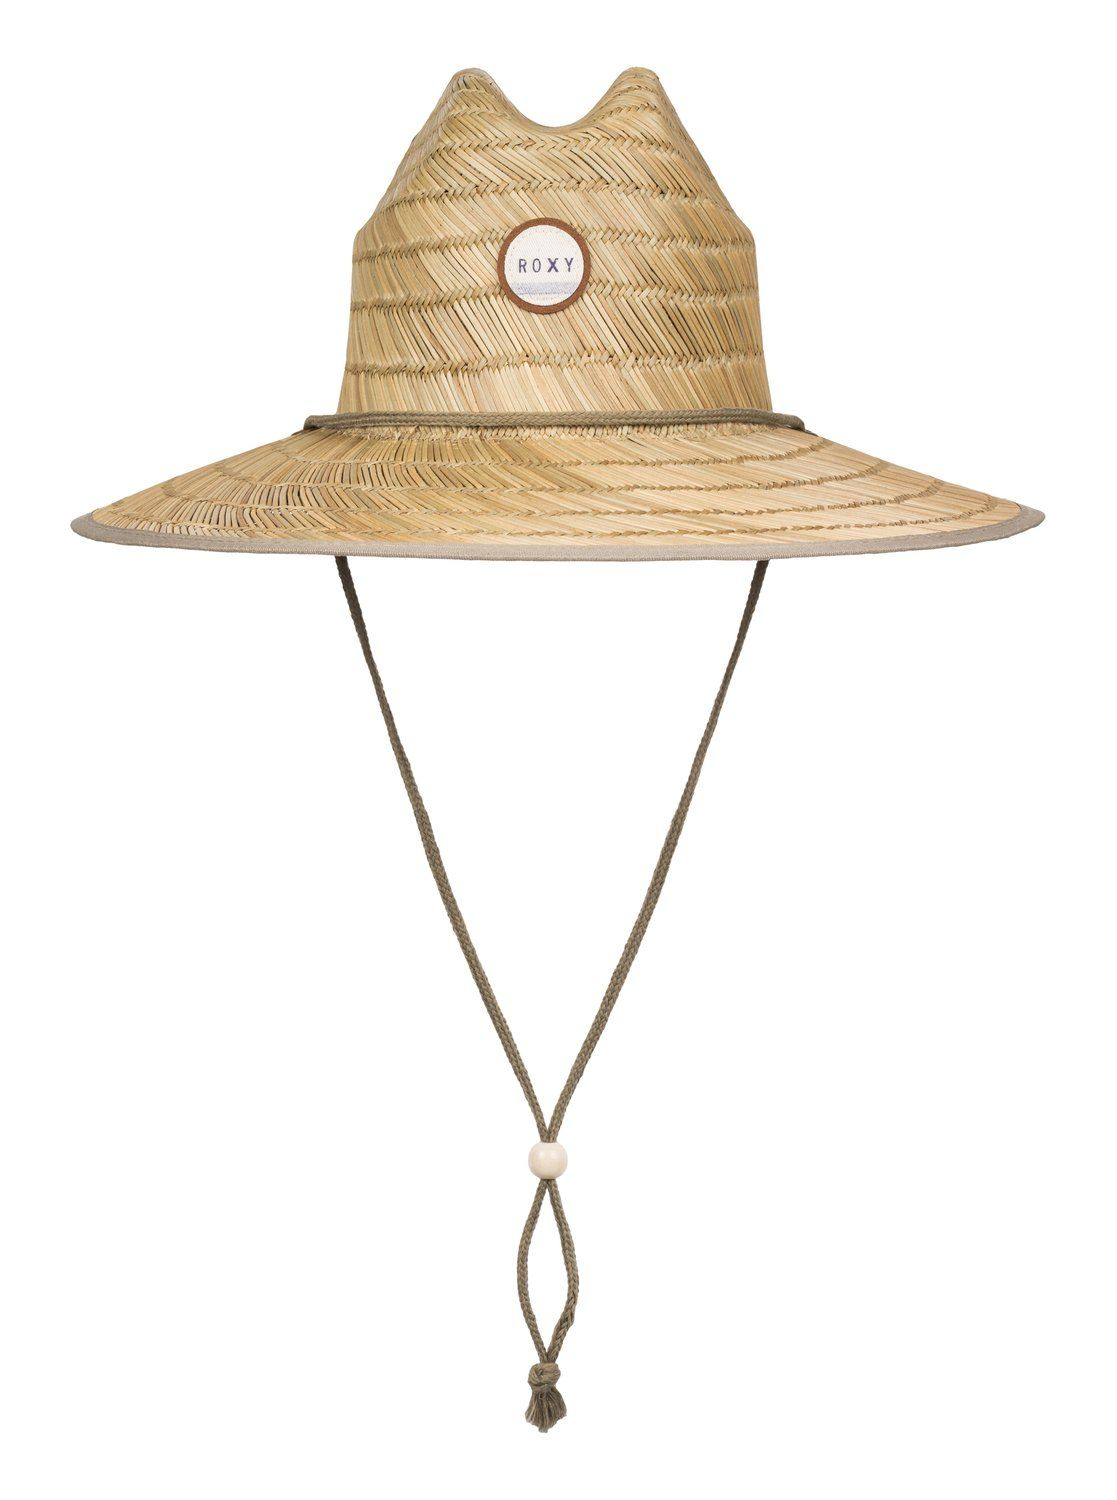 Tomboy Straw Hat 889351065025 Beach Hats Outfit Straw Hat Beach Straw Hats Outfit